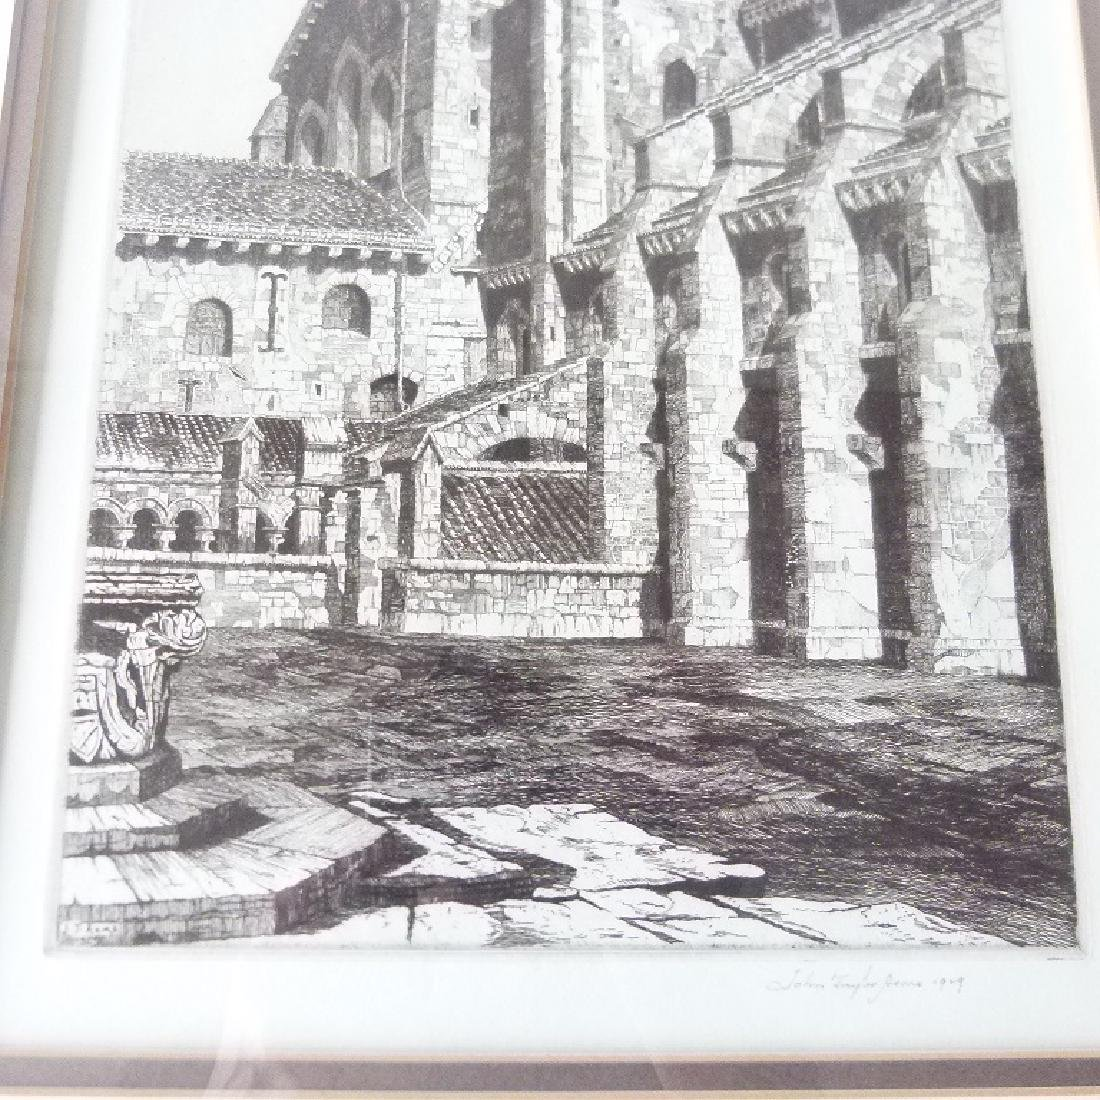 SOFT GROUND ETCHING, CATHEDRAL, SIGNED - 3